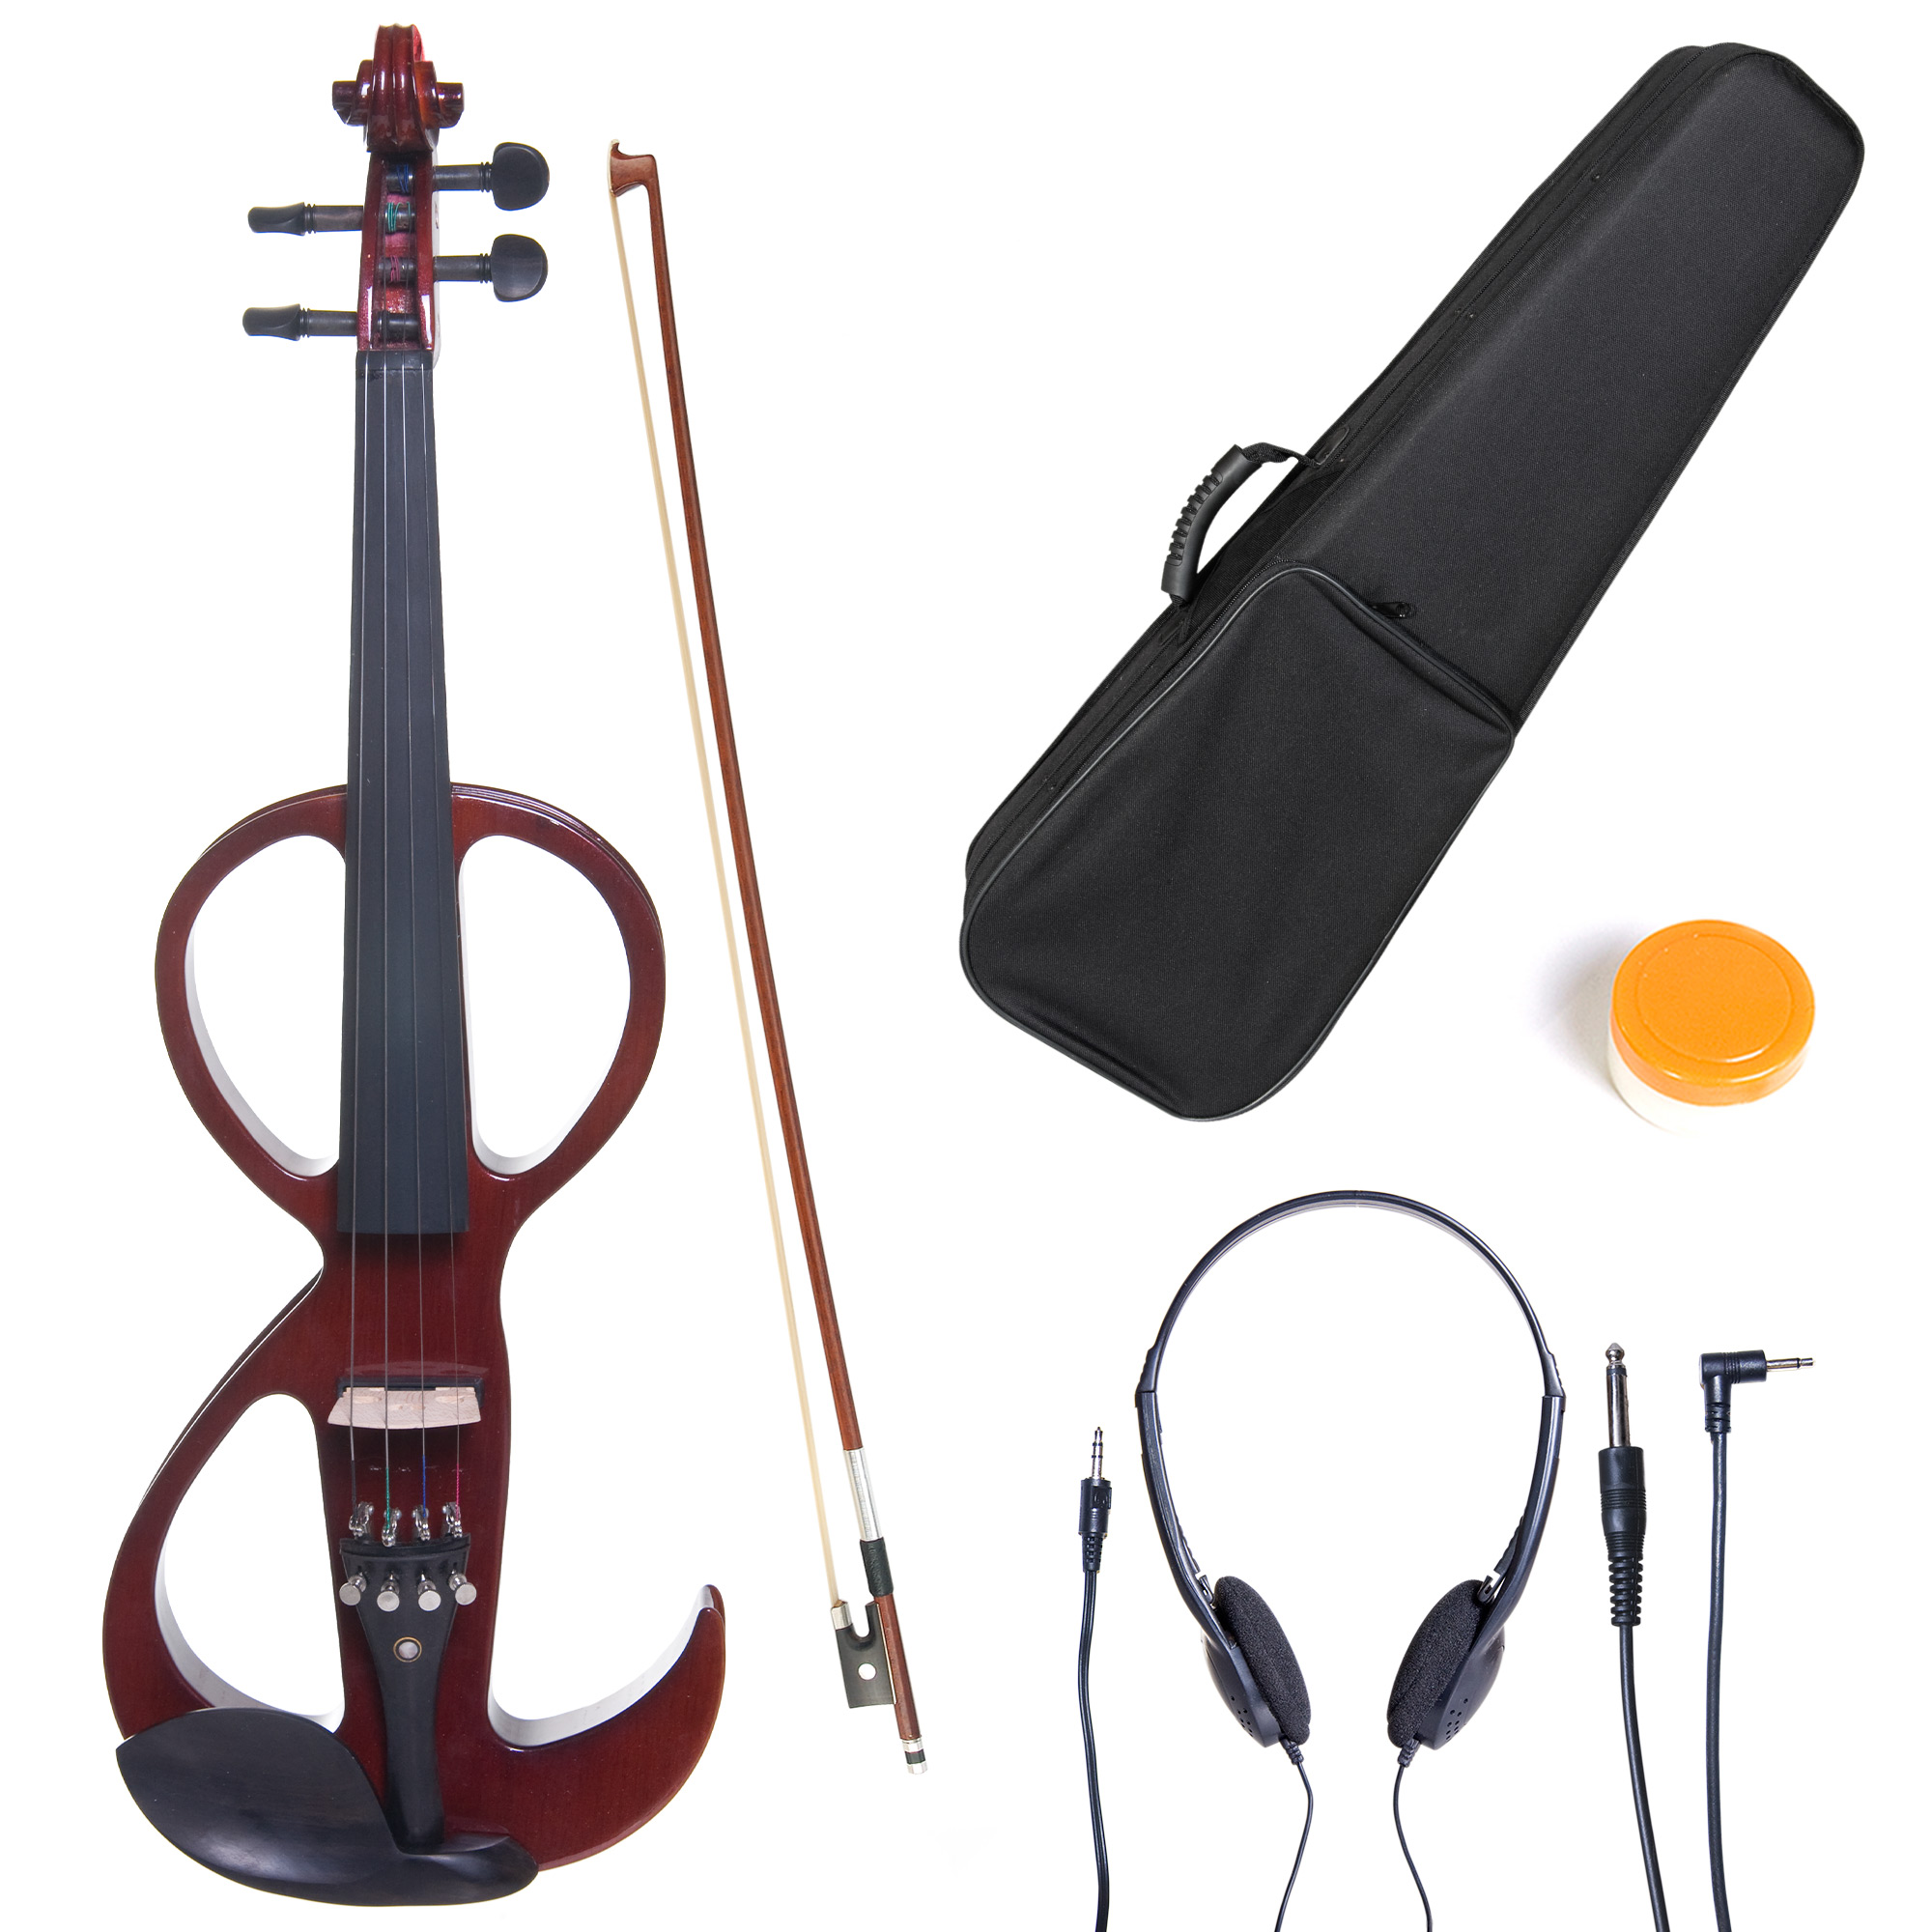 Cecilio 4/4 CEVN-3NA Solidwood Metallic Mahogany Electric/Silent Violin with Ebony Fittings-Full Size